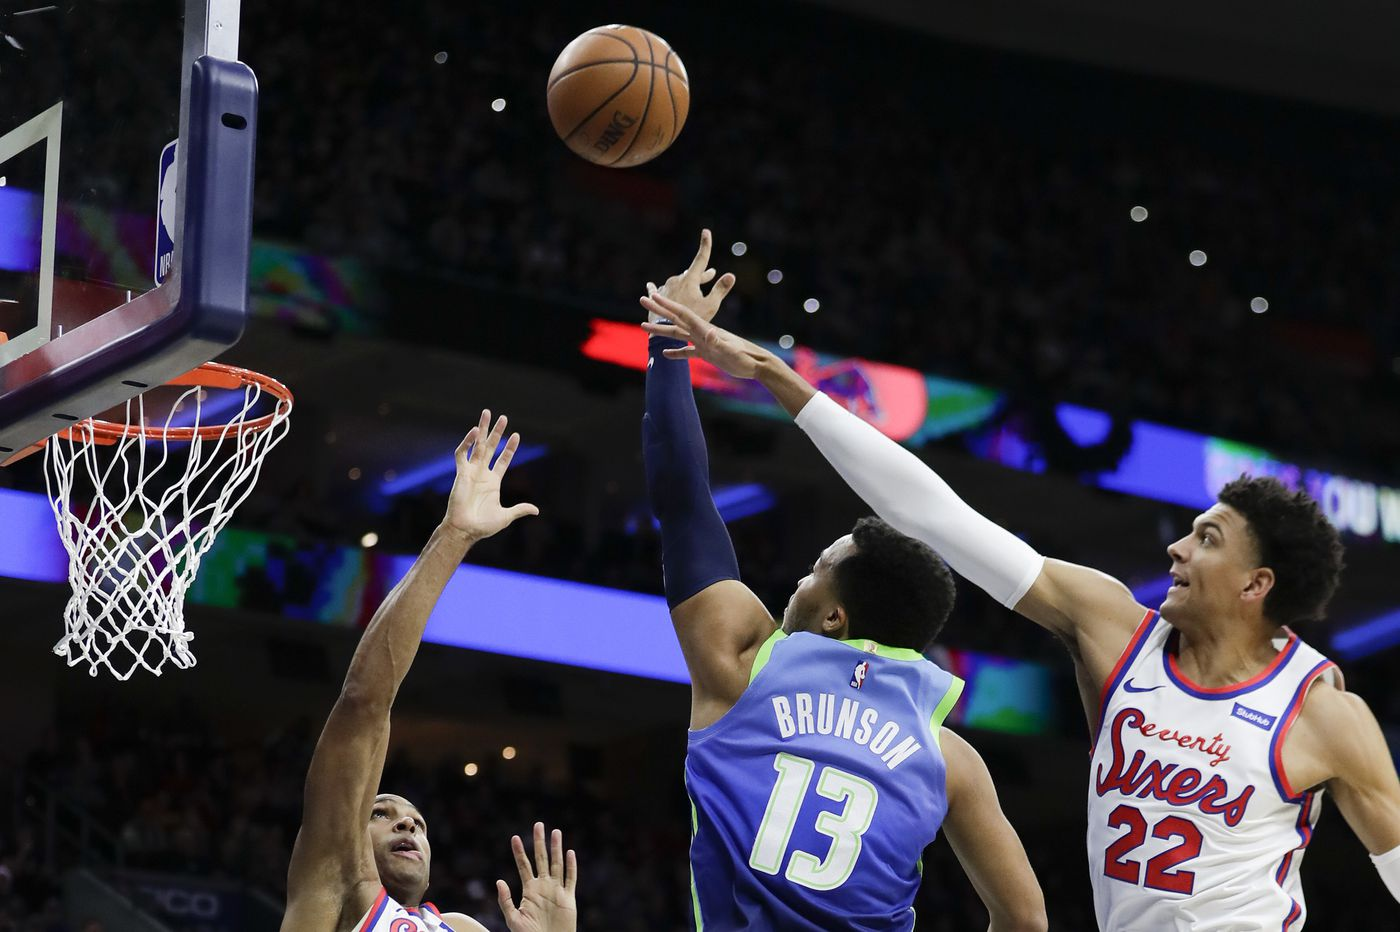 Sixers defense in top form ahead of Saturday's seeding game vs. Indiana Pacers